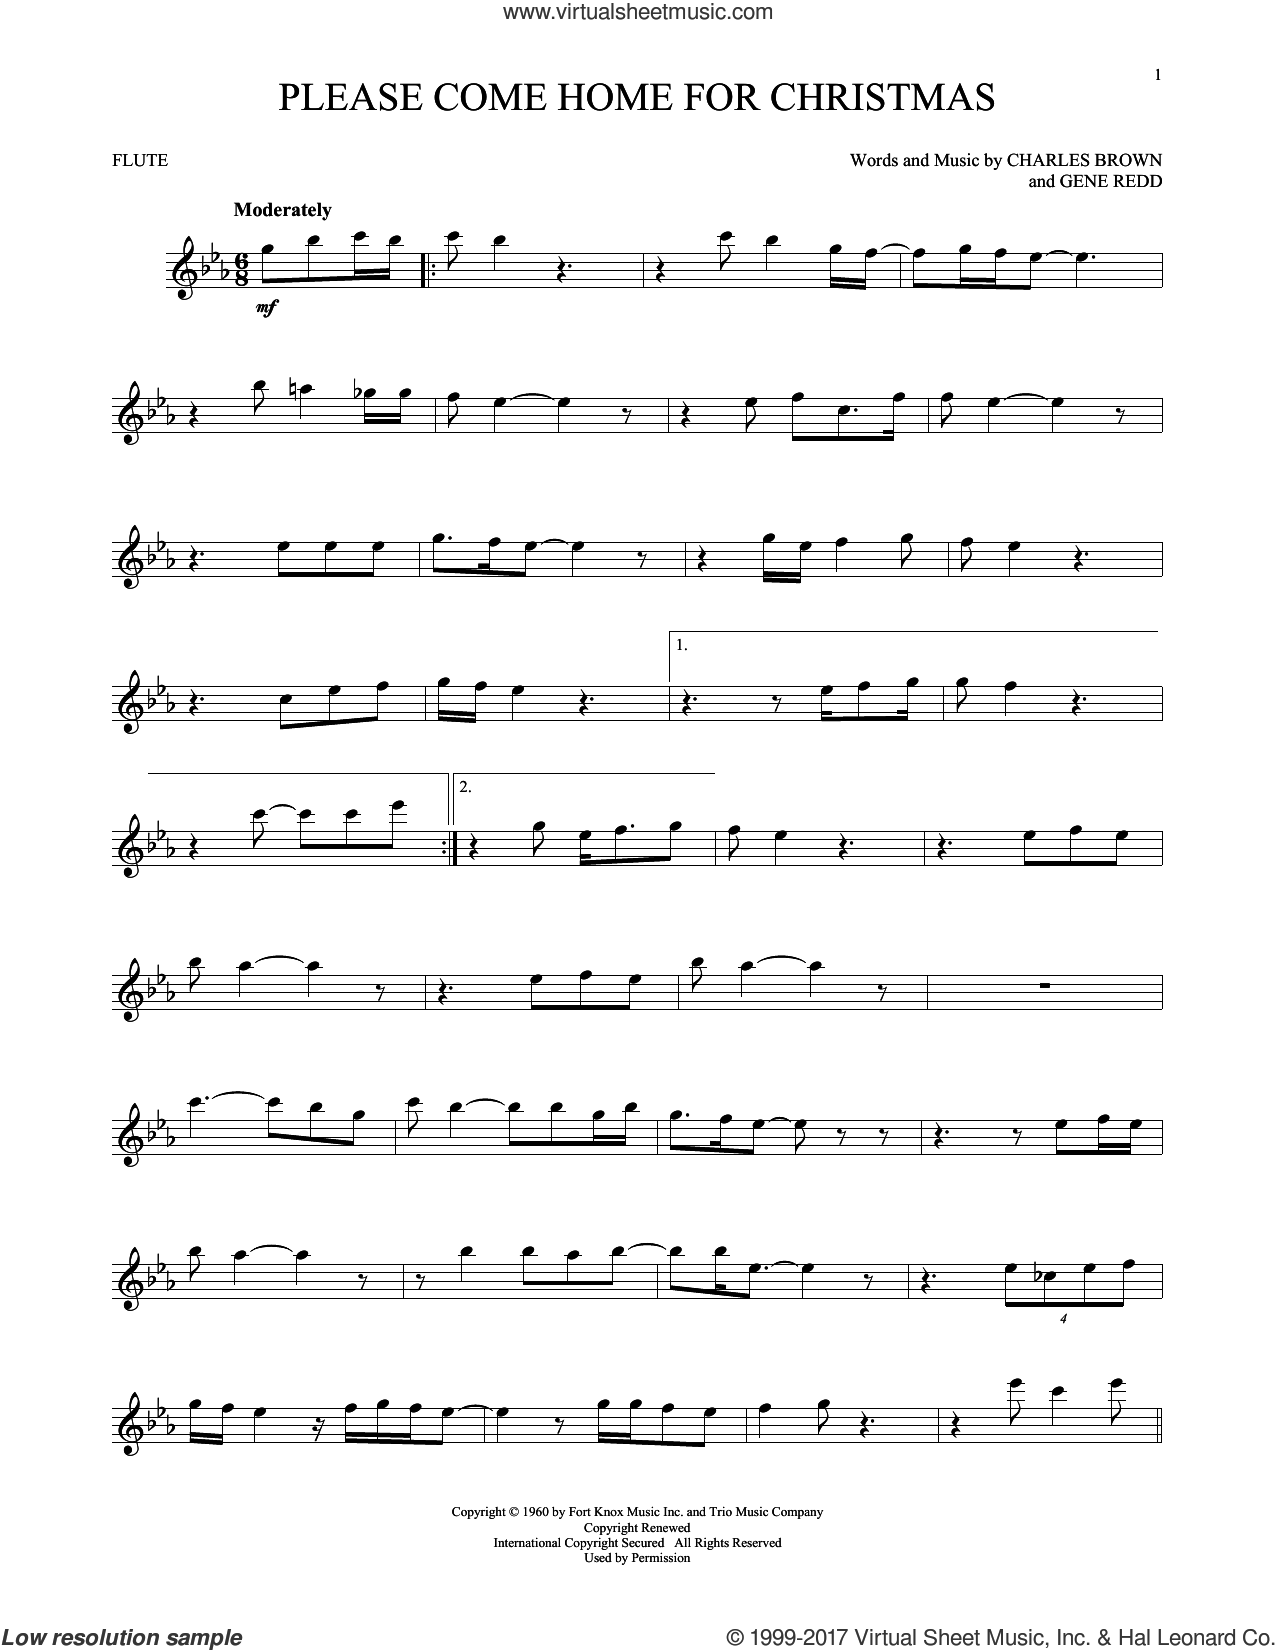 Please Come Home For Christmas sheet music for flute solo by Charles Brown, Josh Gracin, Martina McBride, Willie Nelson and Gene Redd, intermediate skill level